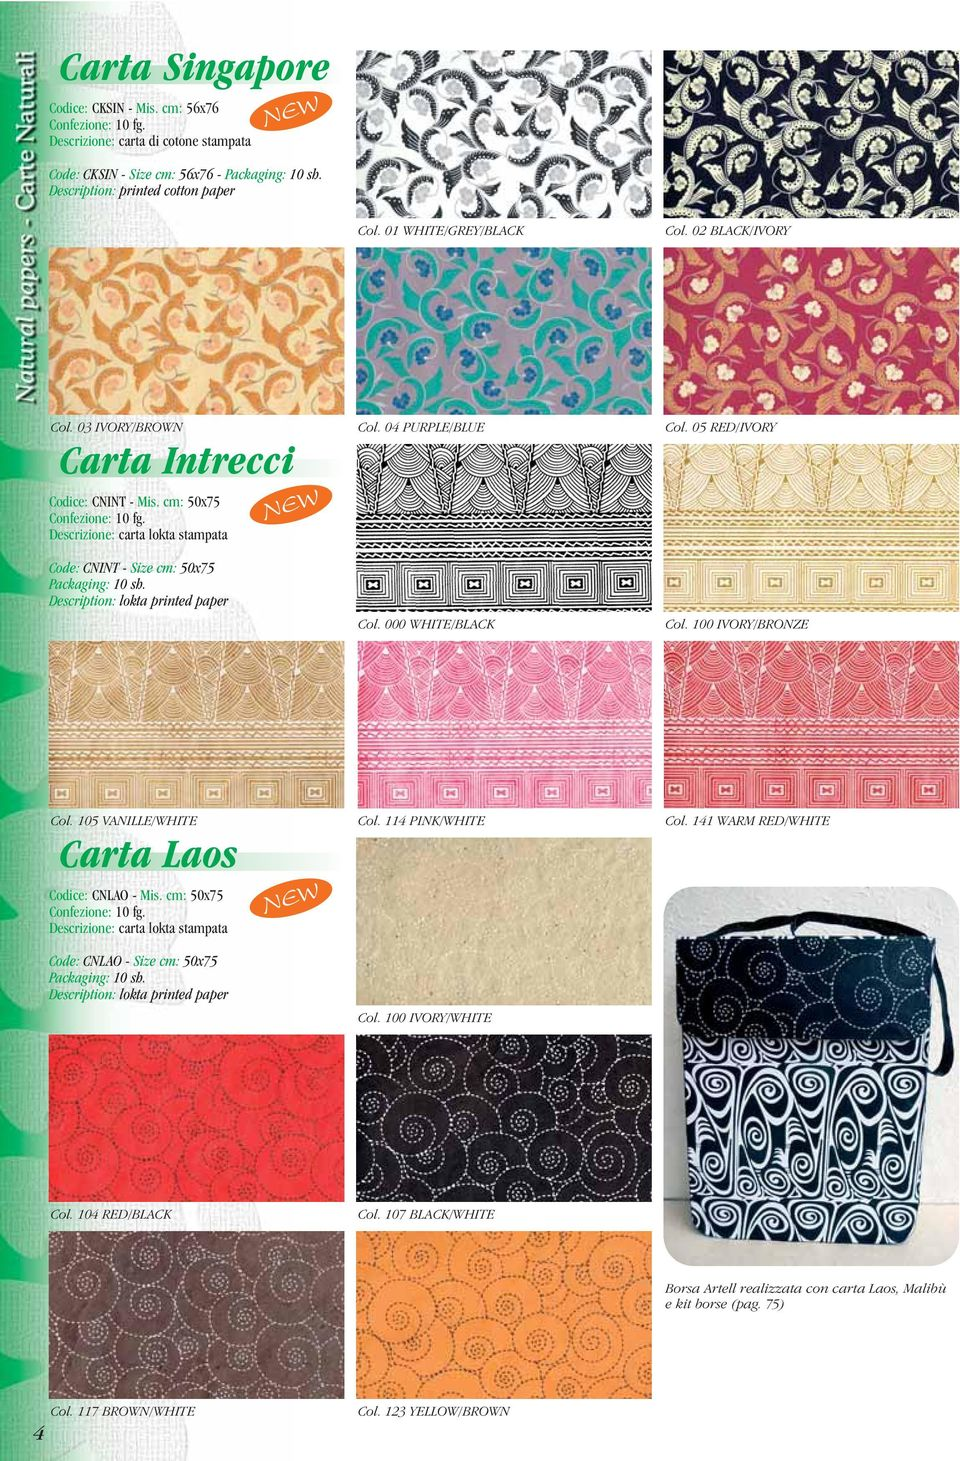 Descrizione: carta lokta stampata Code: CNINT - Size cm: 50x75 Packaging: 10 sh. Description: lokta printed paper Col. 04 PURPLE/BLUE Col. 000 WHITE/BLACK Col. 05 RED/IVORY Col. 100 IVORY/BRONZE Col.